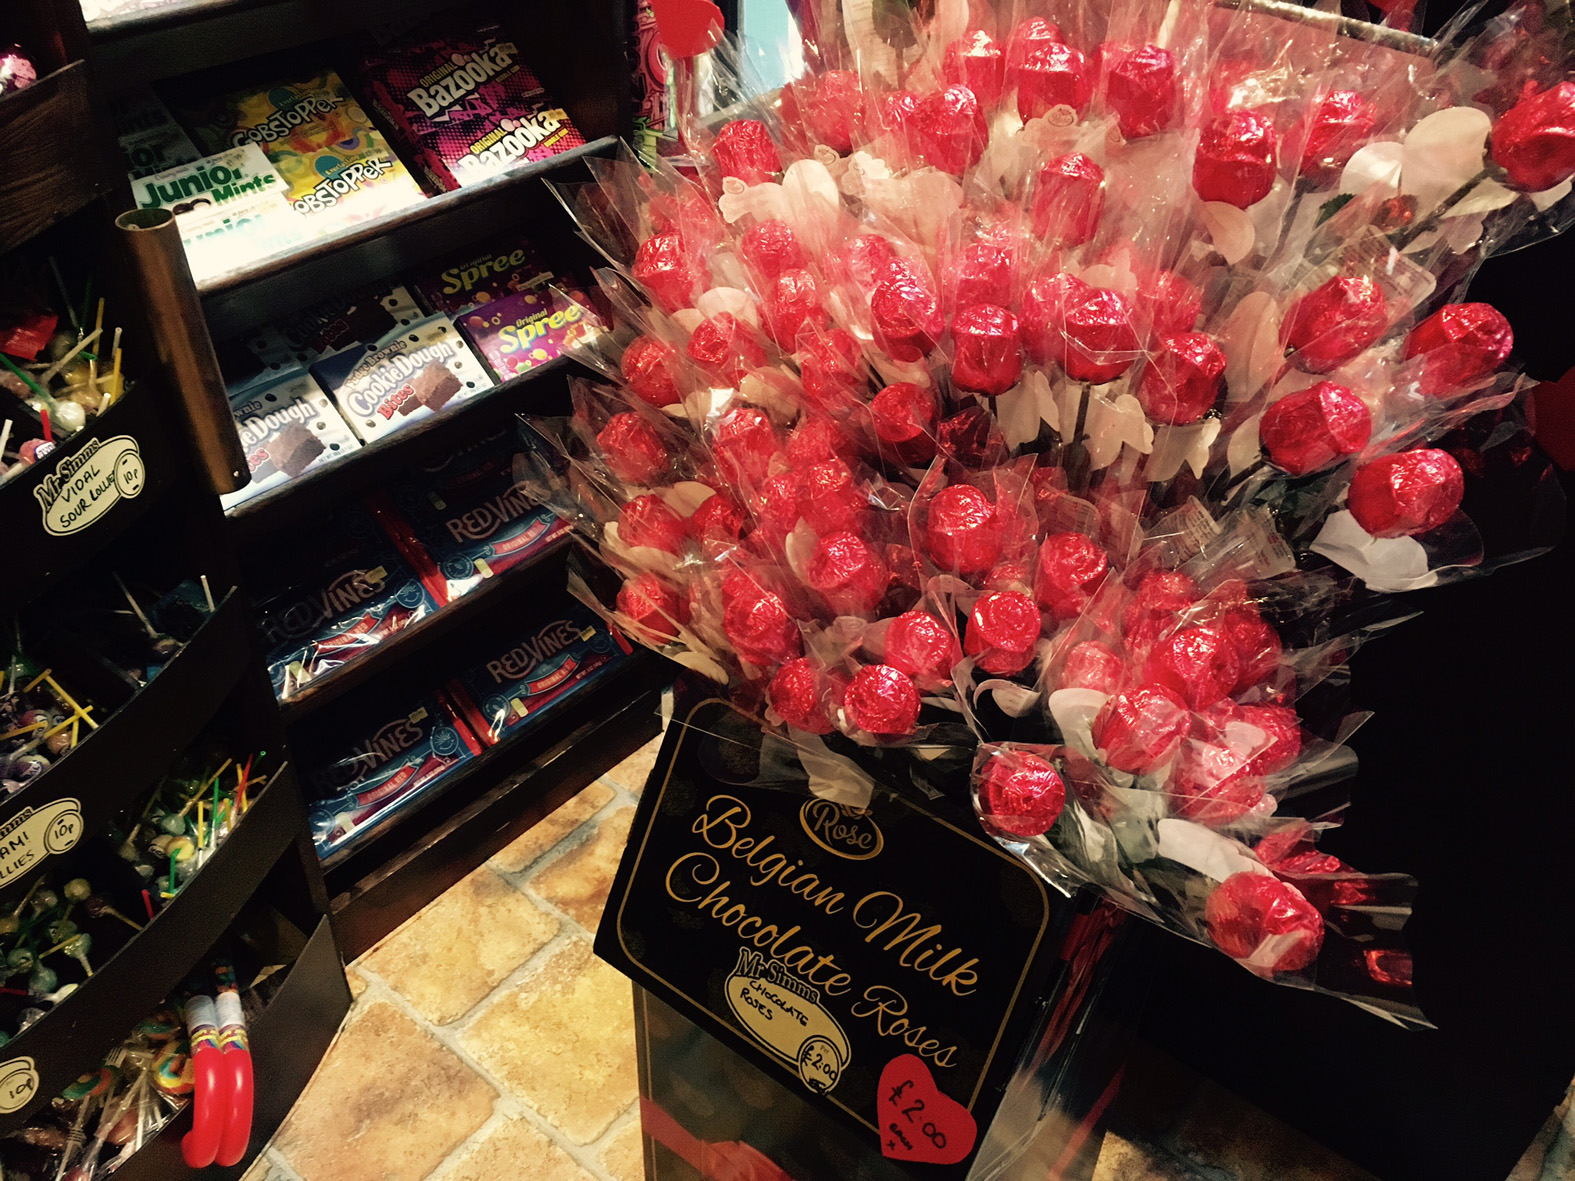 Mr Simms Sweet Shop chocolate roses